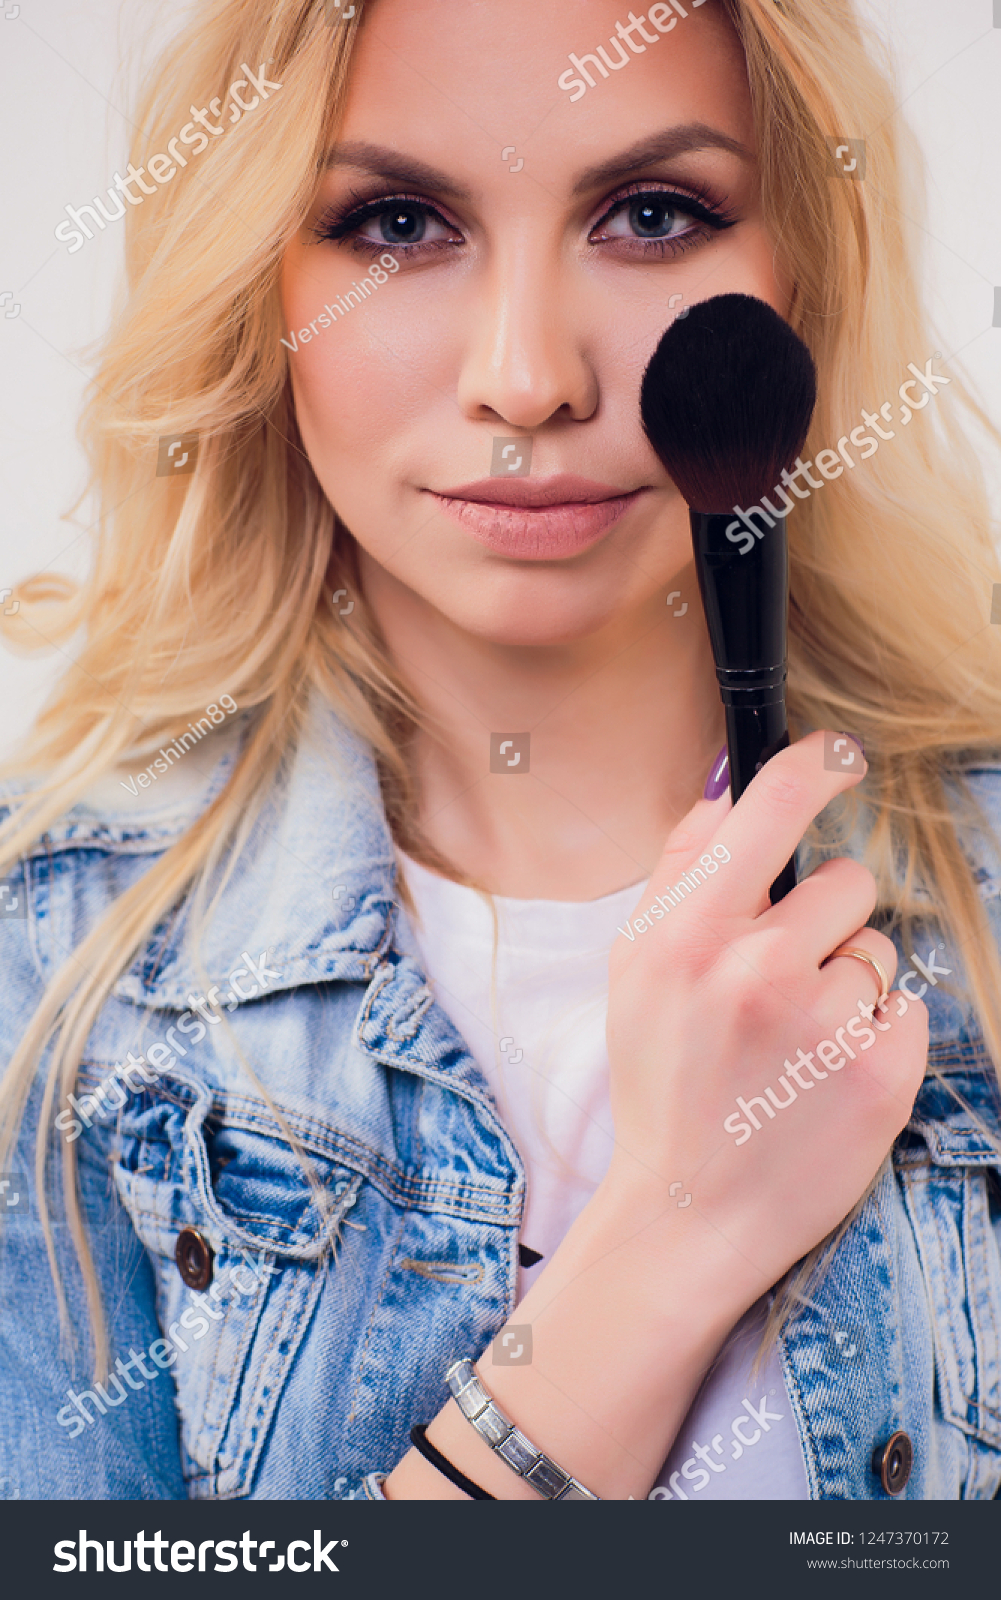 Beauty Woman with Makeup Brushes. Natural Make-up for Blonde Model Girl with Blue Eyes. Beautiful Face. Makeover. Perfect Skin. Applying Holiday Makeup with ...